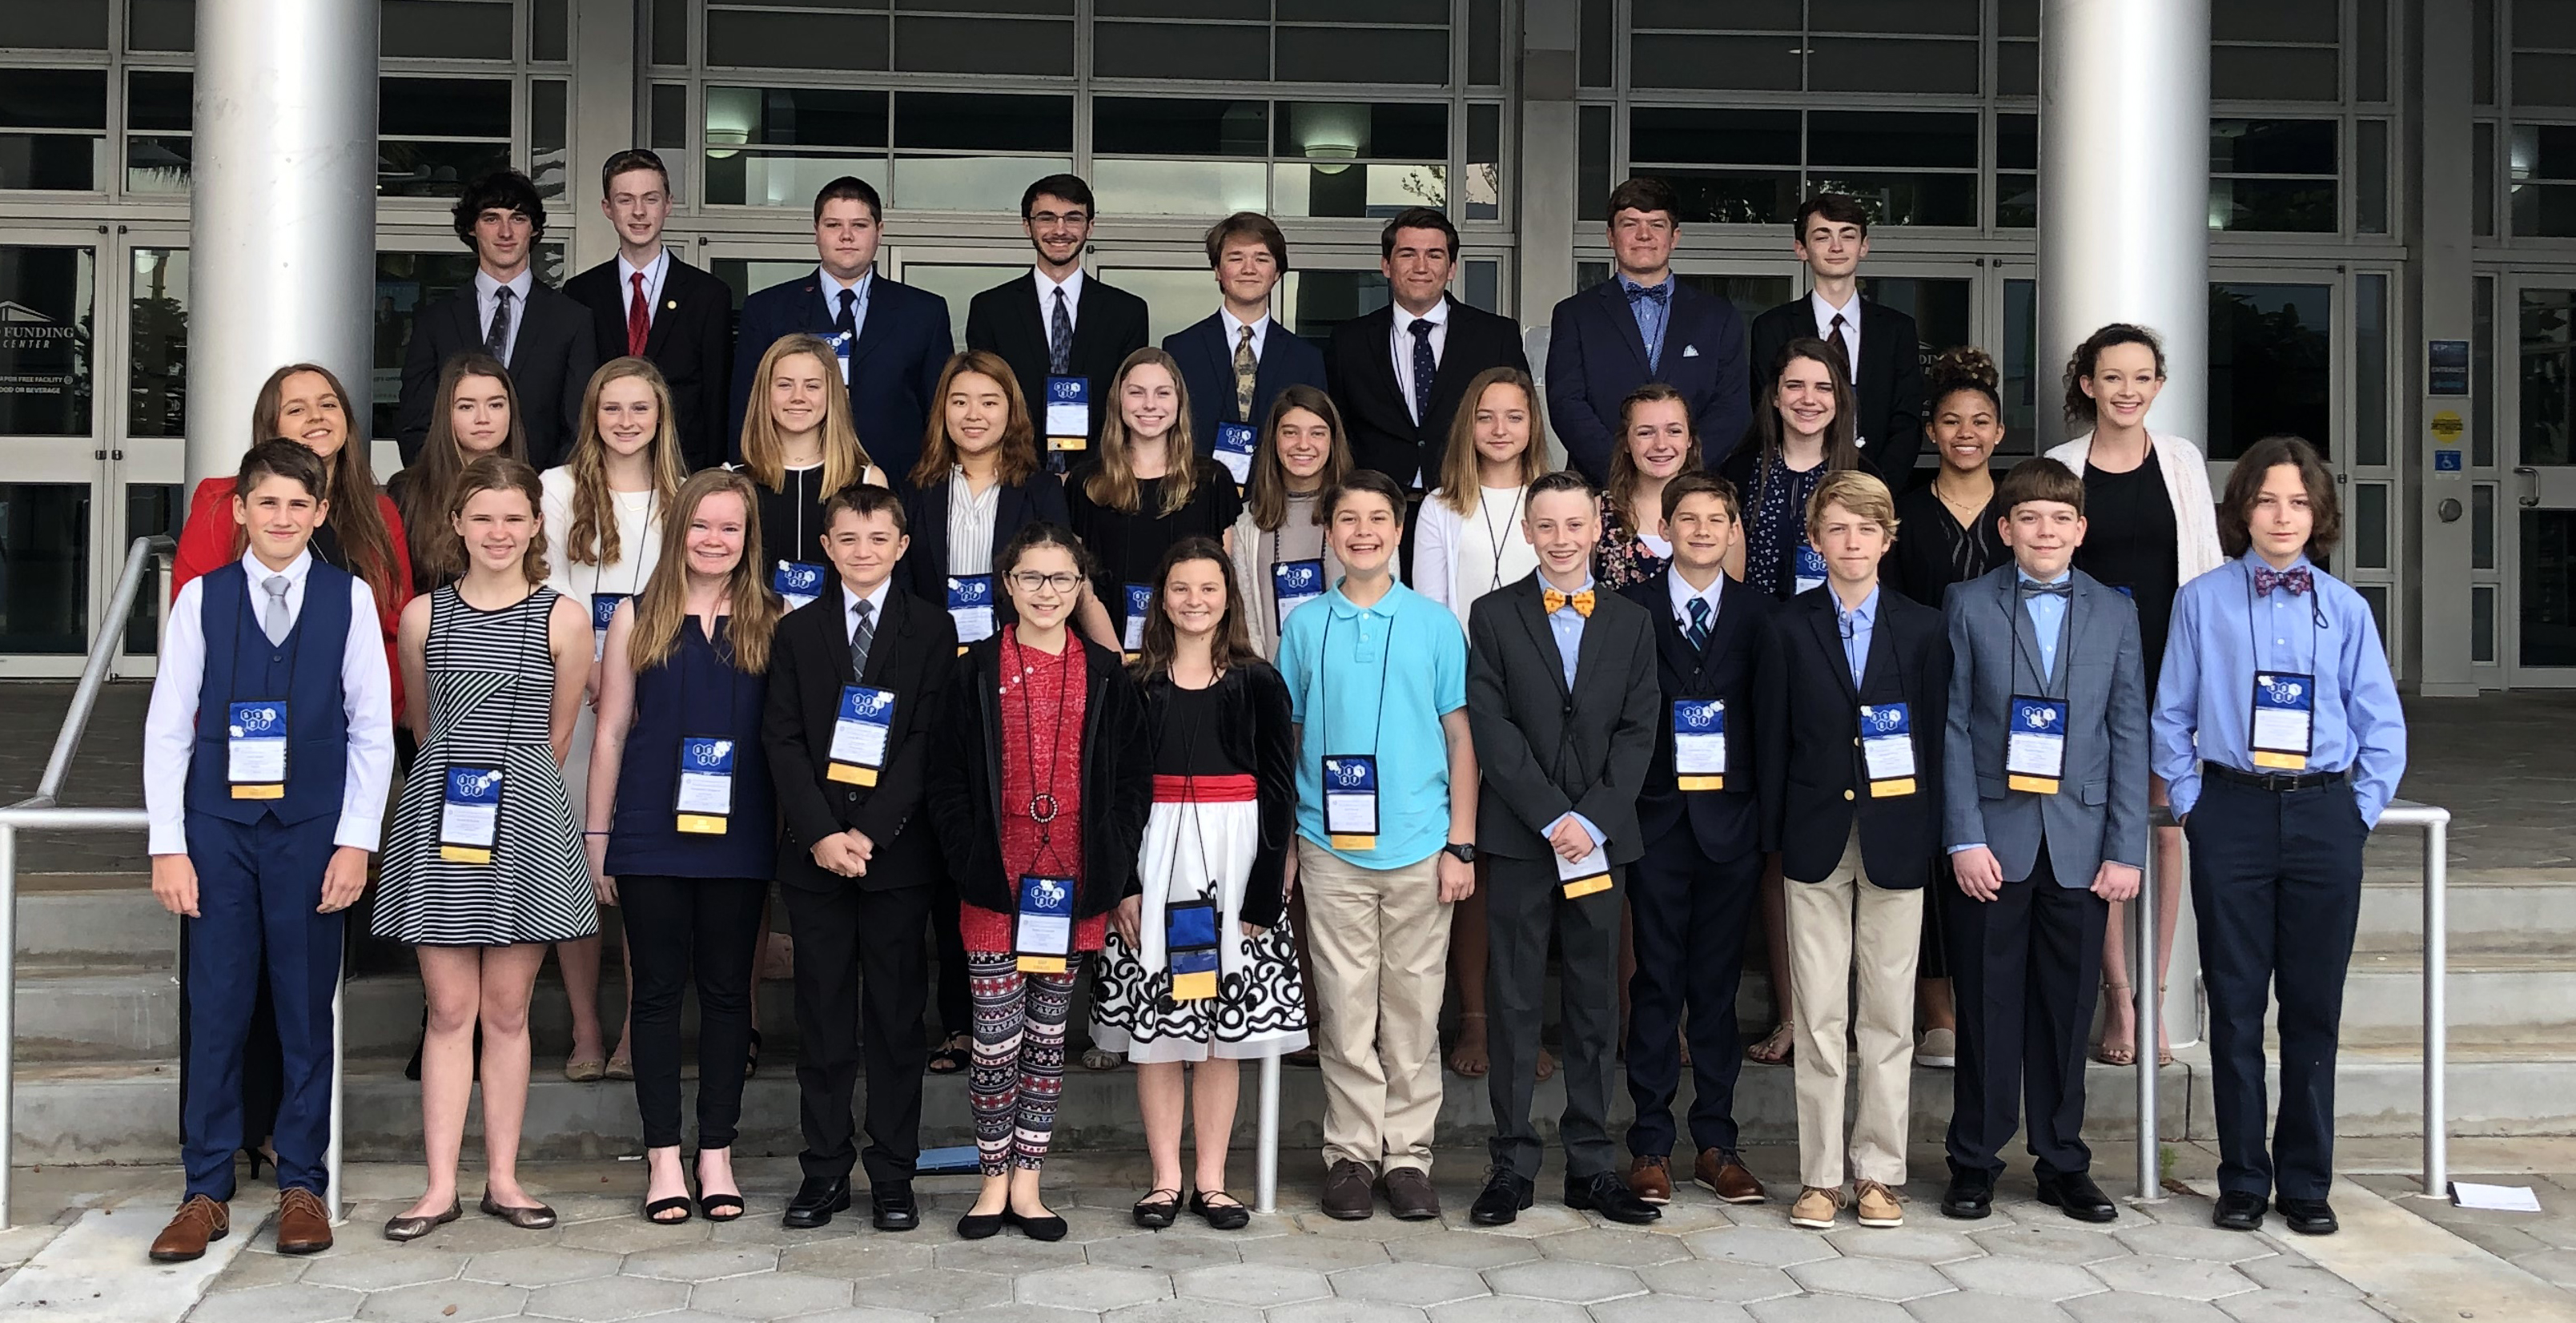 State Science Fair Participants